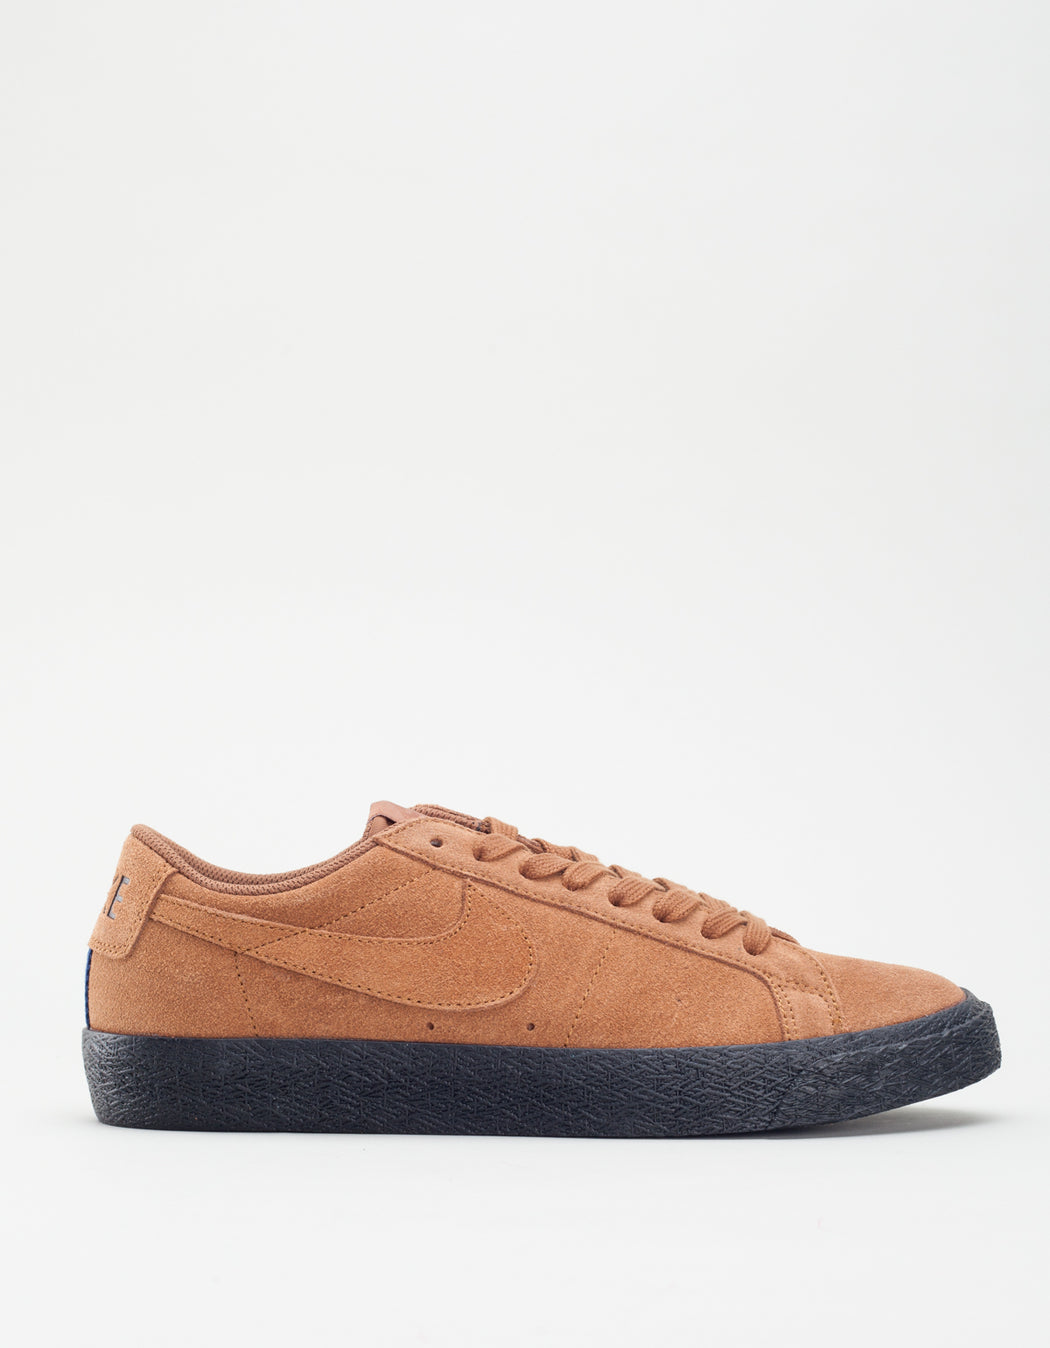 Nike SB Zoom Blazer Low LT British Tan Black